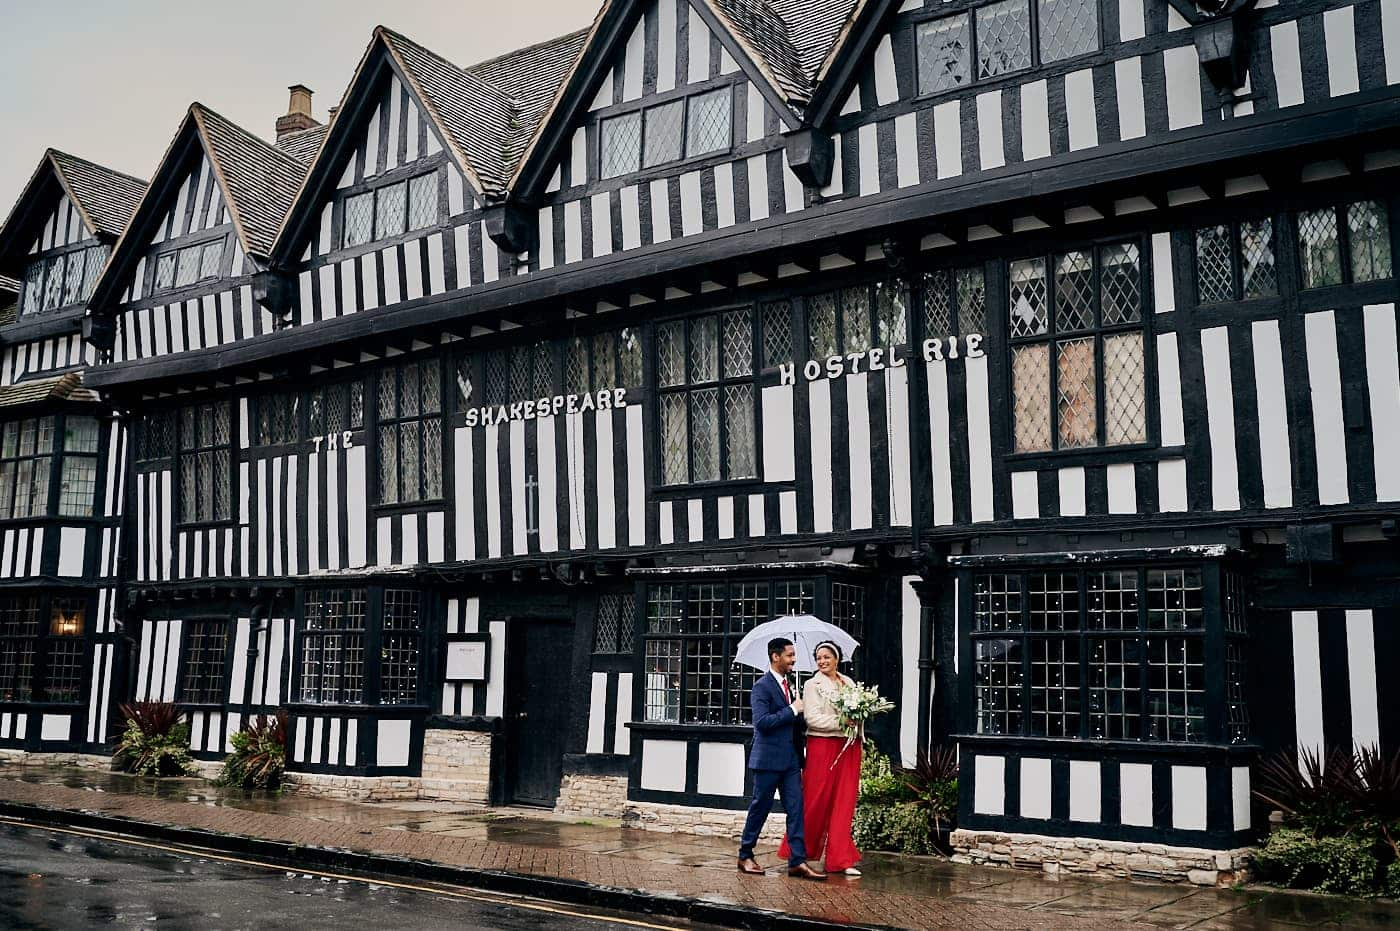 Newly married couple walk in front of old hostel in Stratford-upon-Avon